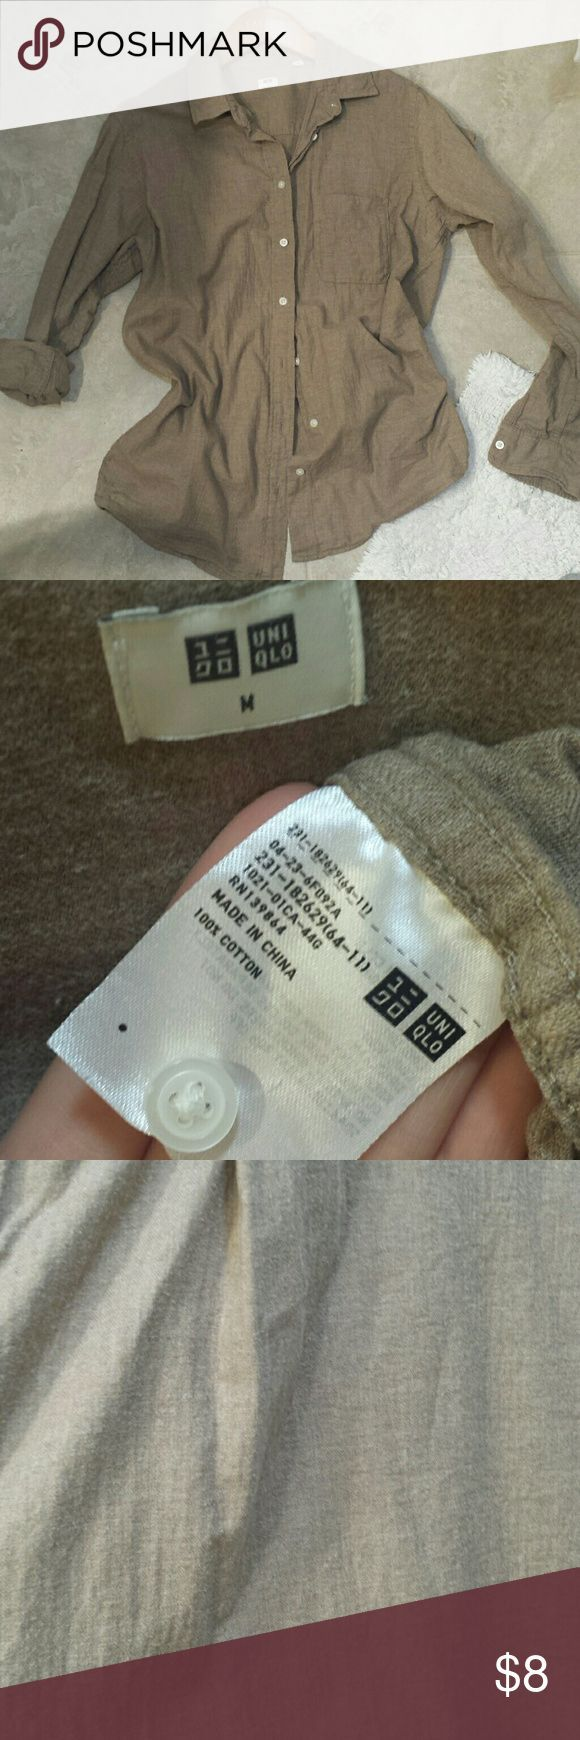 cool Tendance salopette 2017 - Uniqlo beige dress shirt Has some bobbing due to wear but the material overall i... Check more at https://listspirit.com/tendance-salopette-2017-uniqlo-beige-dress-shirt-has-some-bobbing-due-to-wear-but-the-material-overall-i/